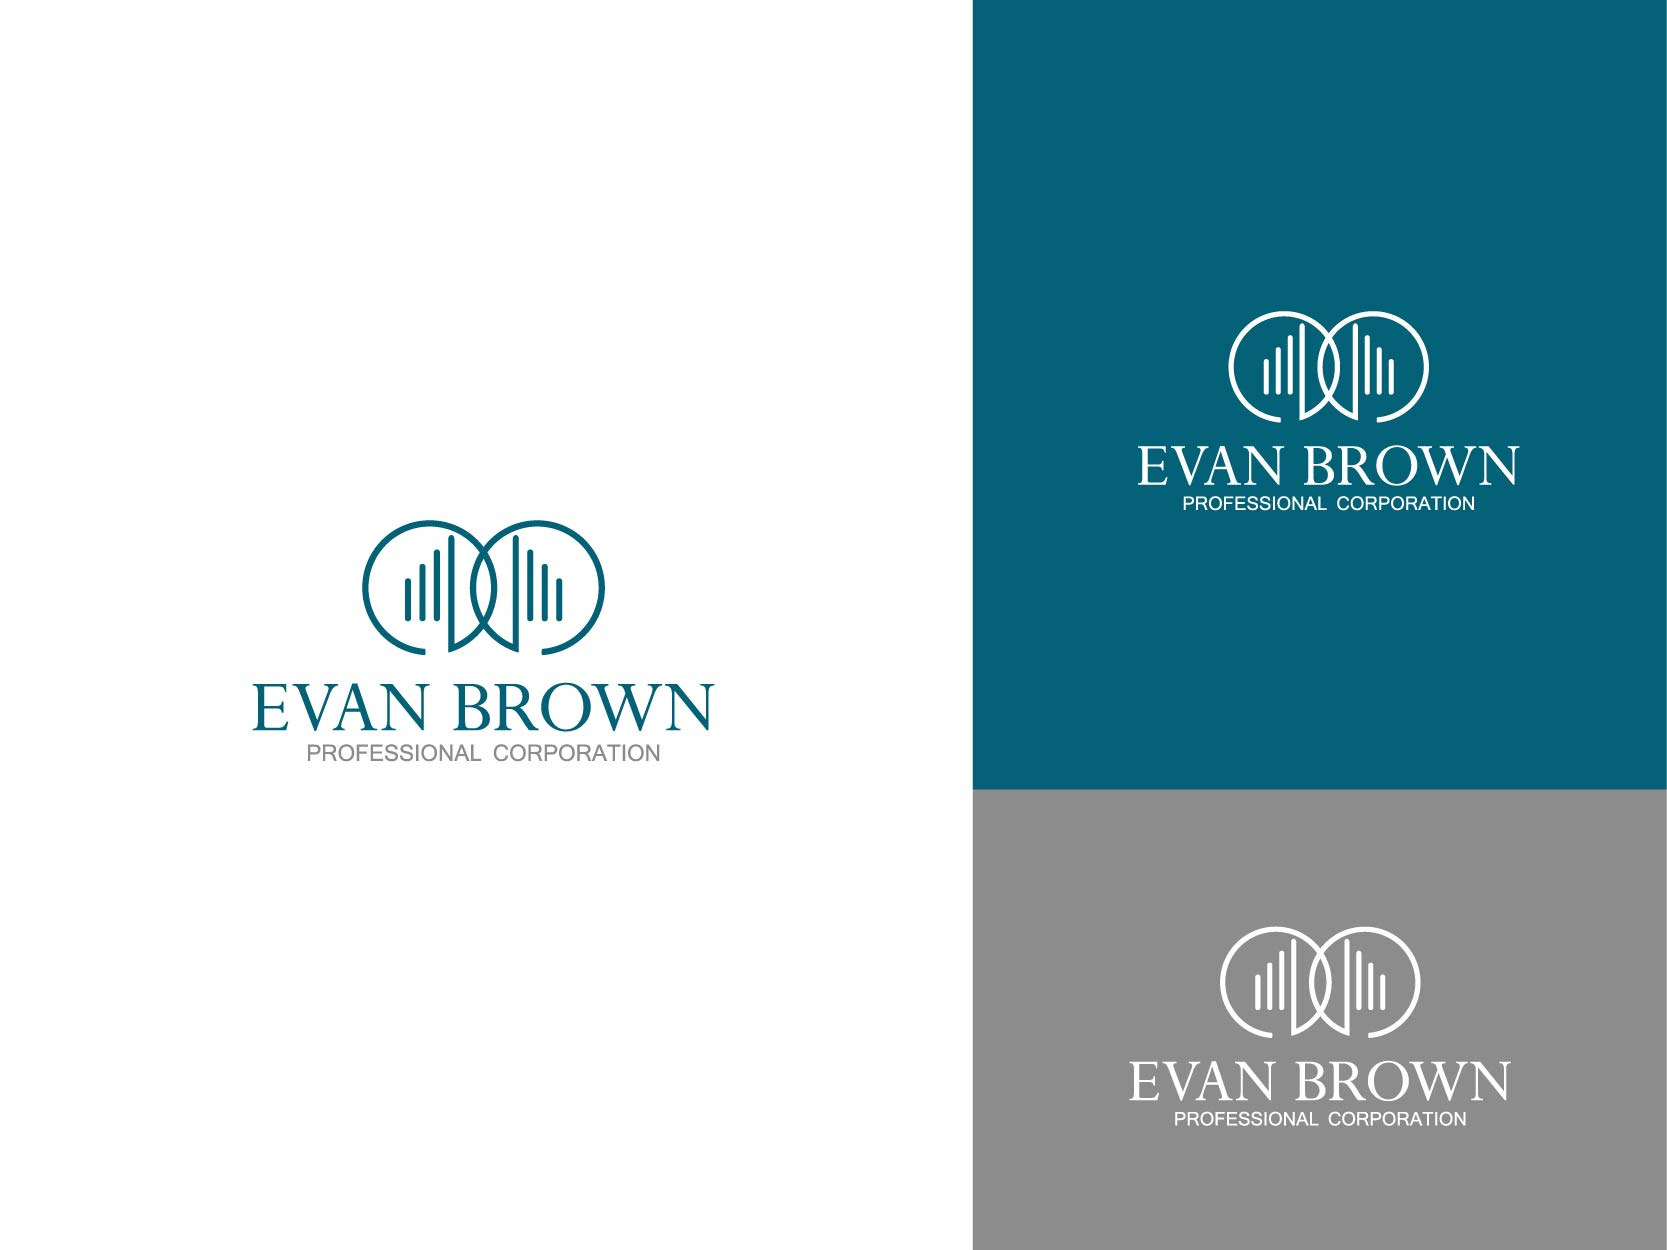 Logo Design by Osi Indra - Entry No. 50 in the Logo Design Contest Inspiring Logo Design for Evan Brown Professional Corporation.